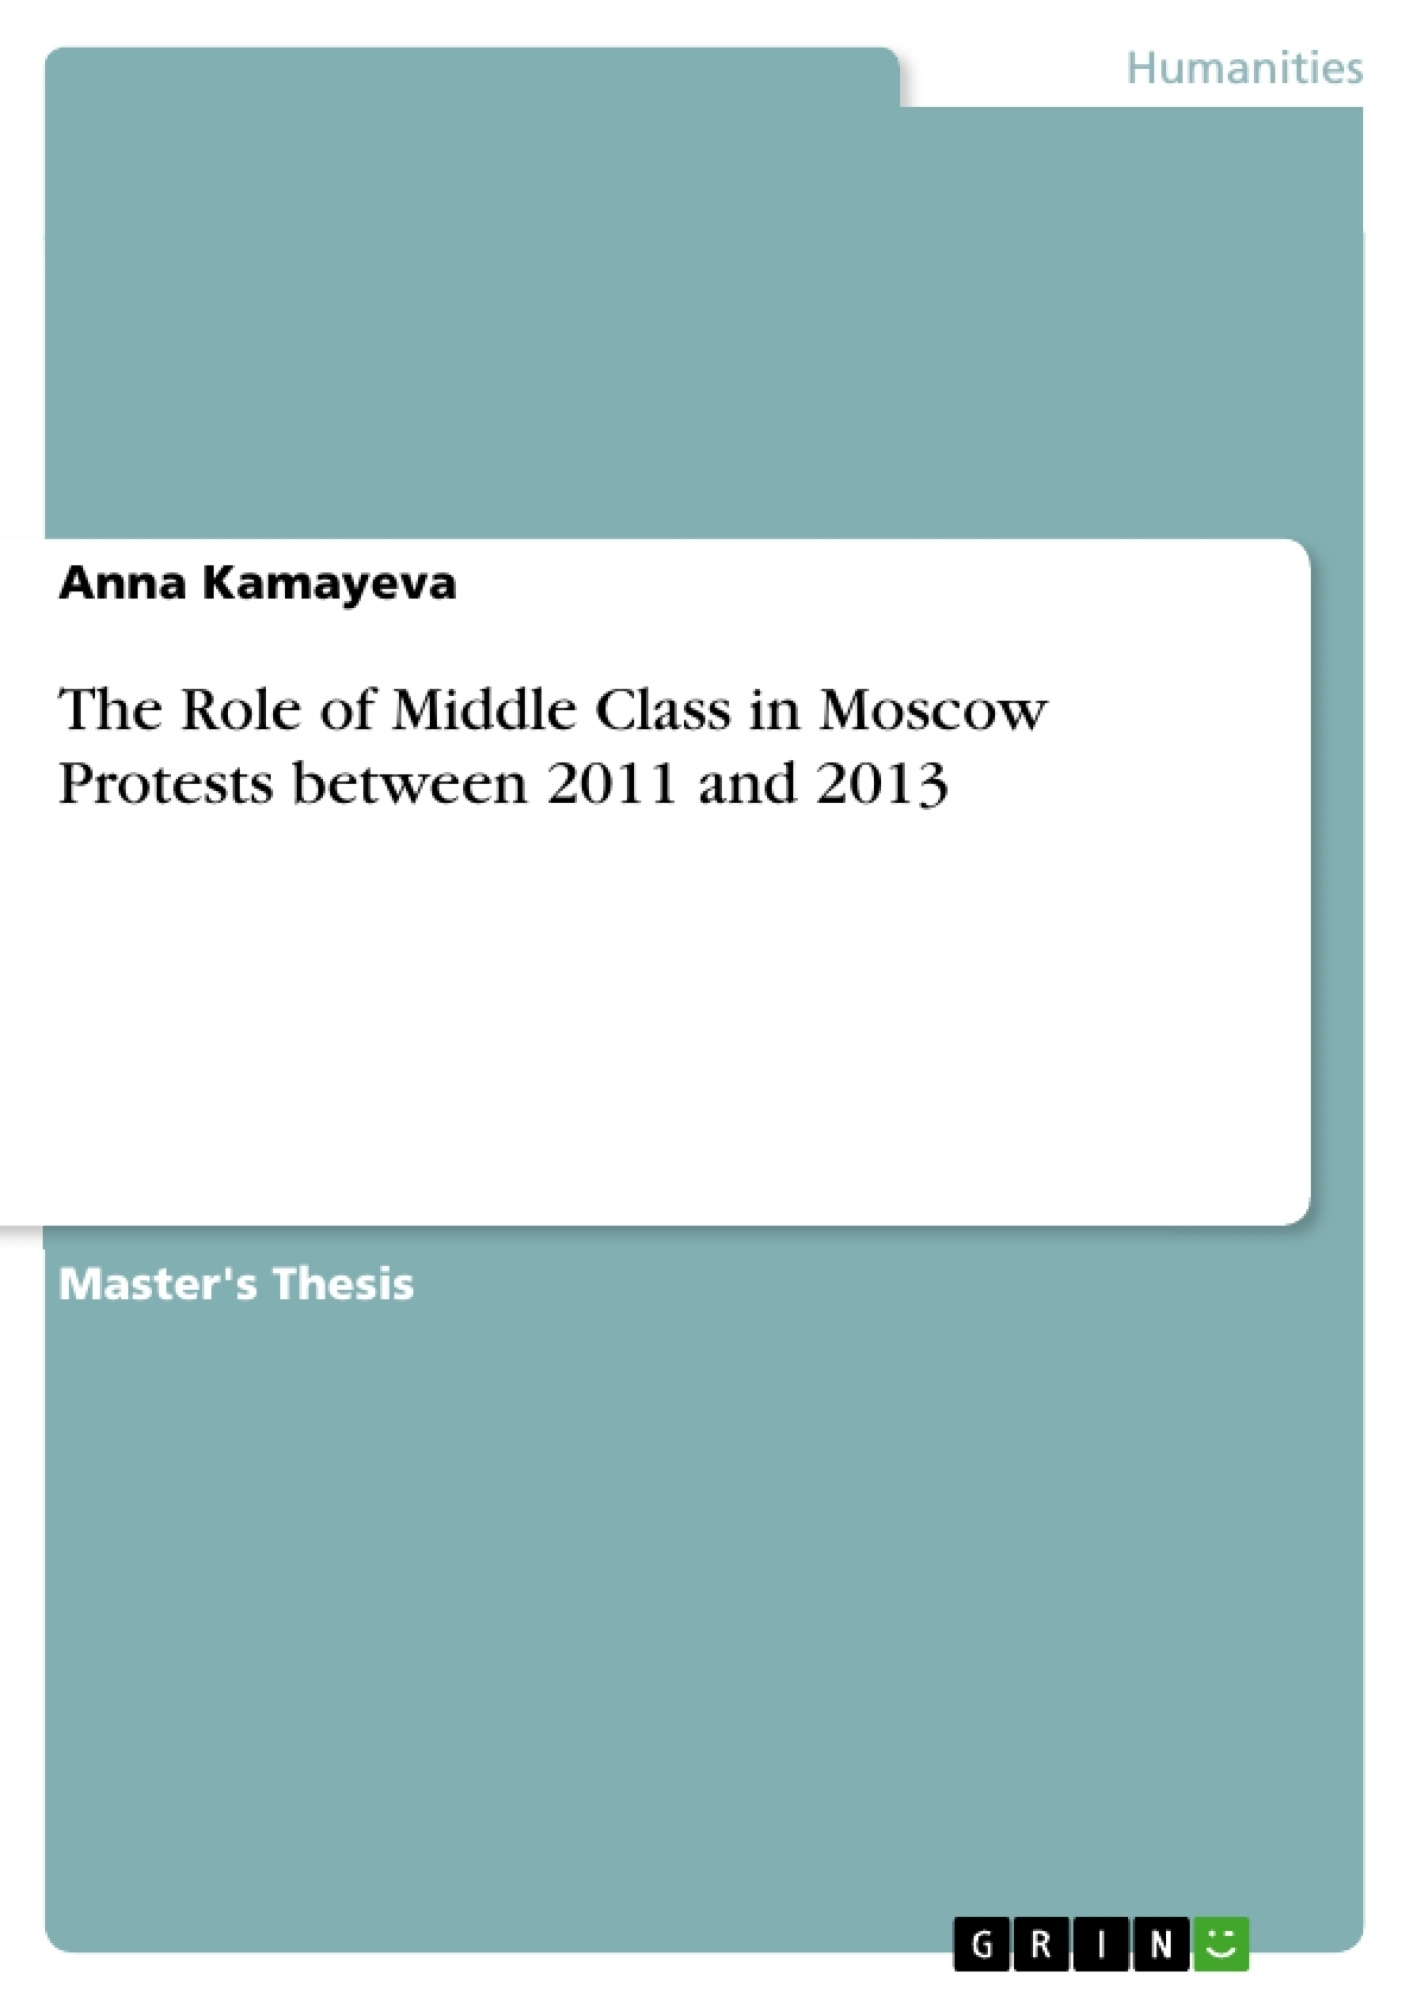 Title: The Role of Middle Class in Moscow Protests between 2011 and 2013